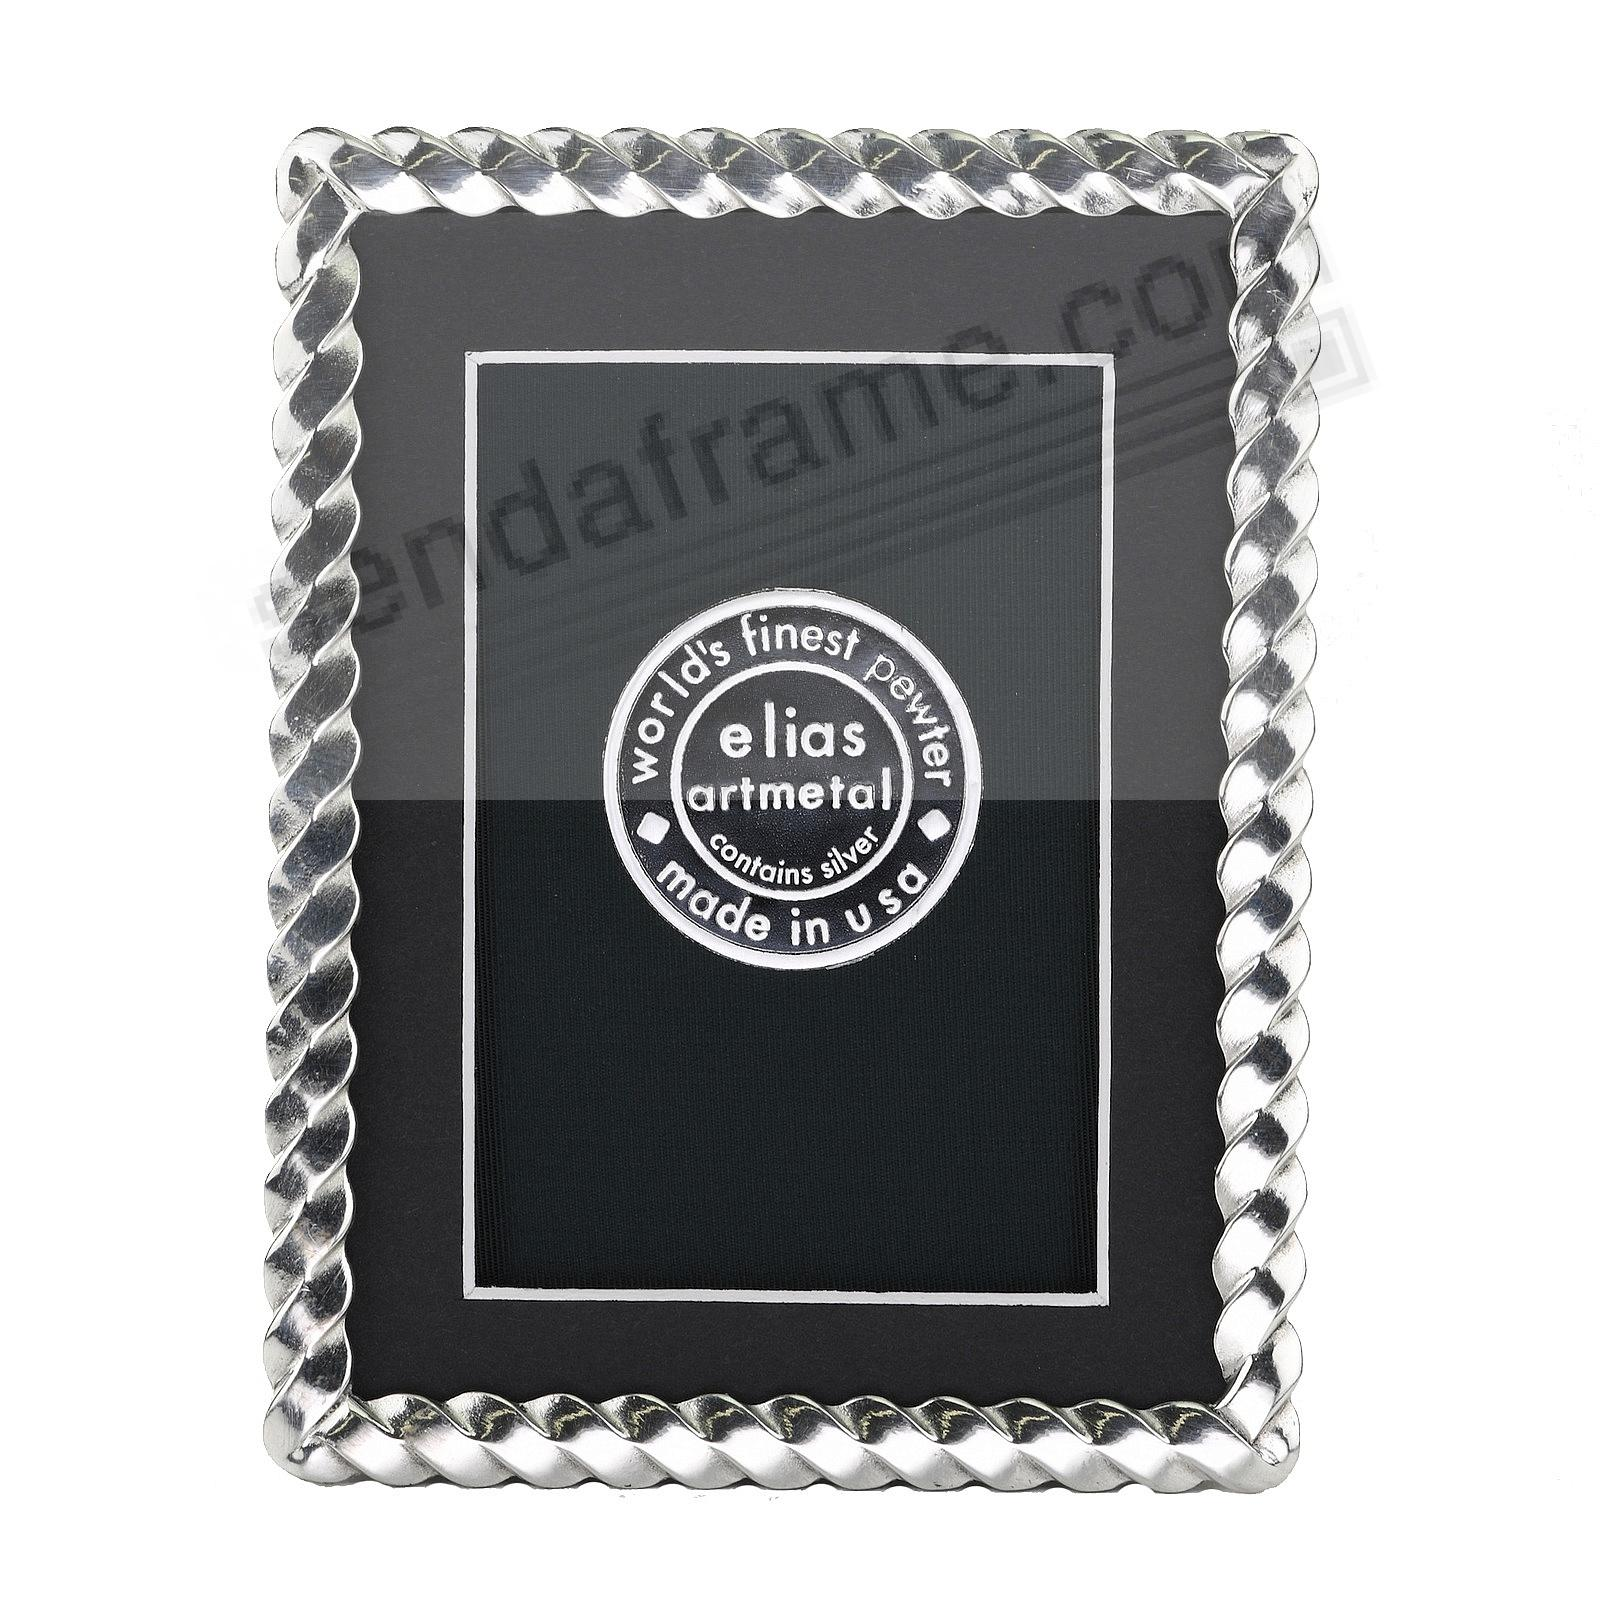 SPIRAL fine Silvered Pewter 3x4 frame by Elias Artmetal®